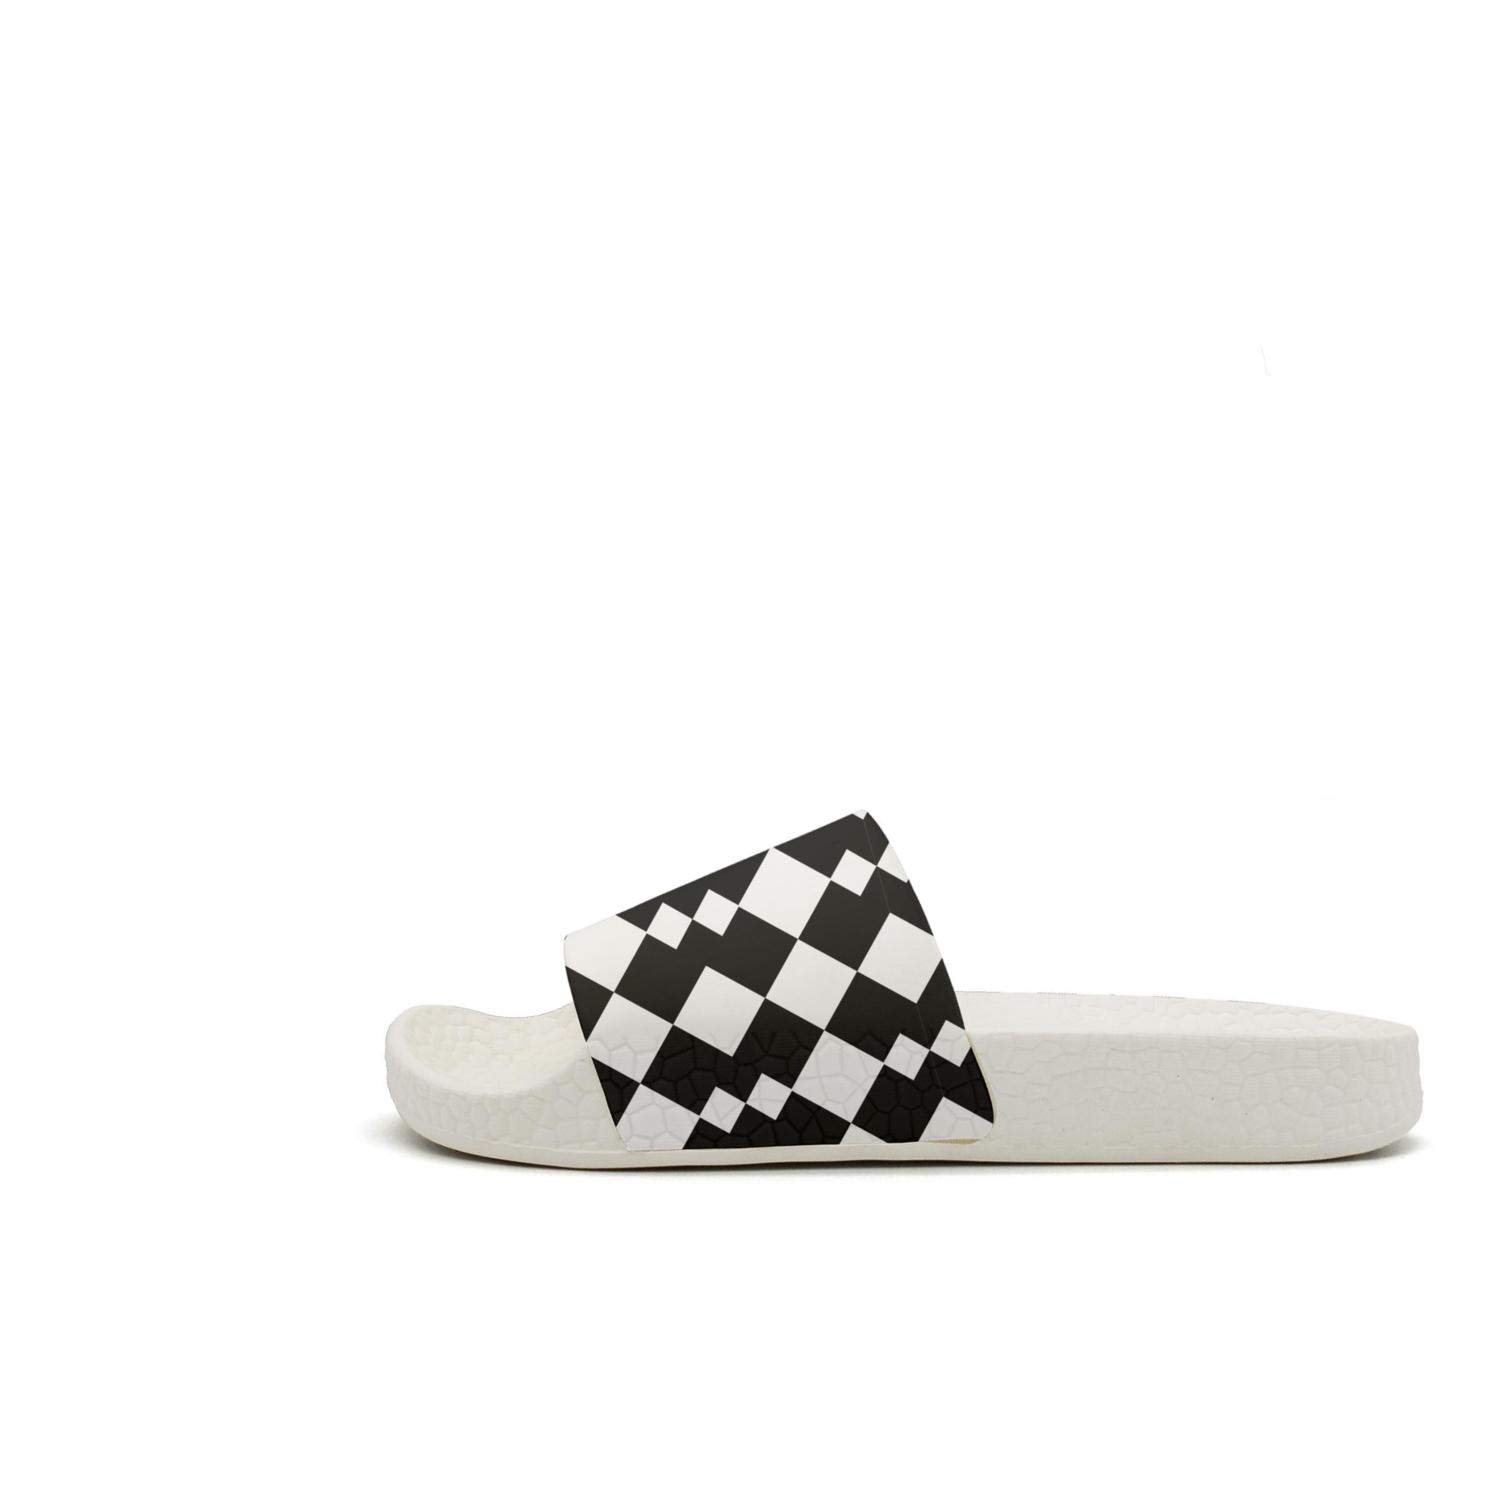 TAKLOOL Black and White Vector Abstract Geometric Shapes Quick Dry Super Soft Womens Slide Sandal